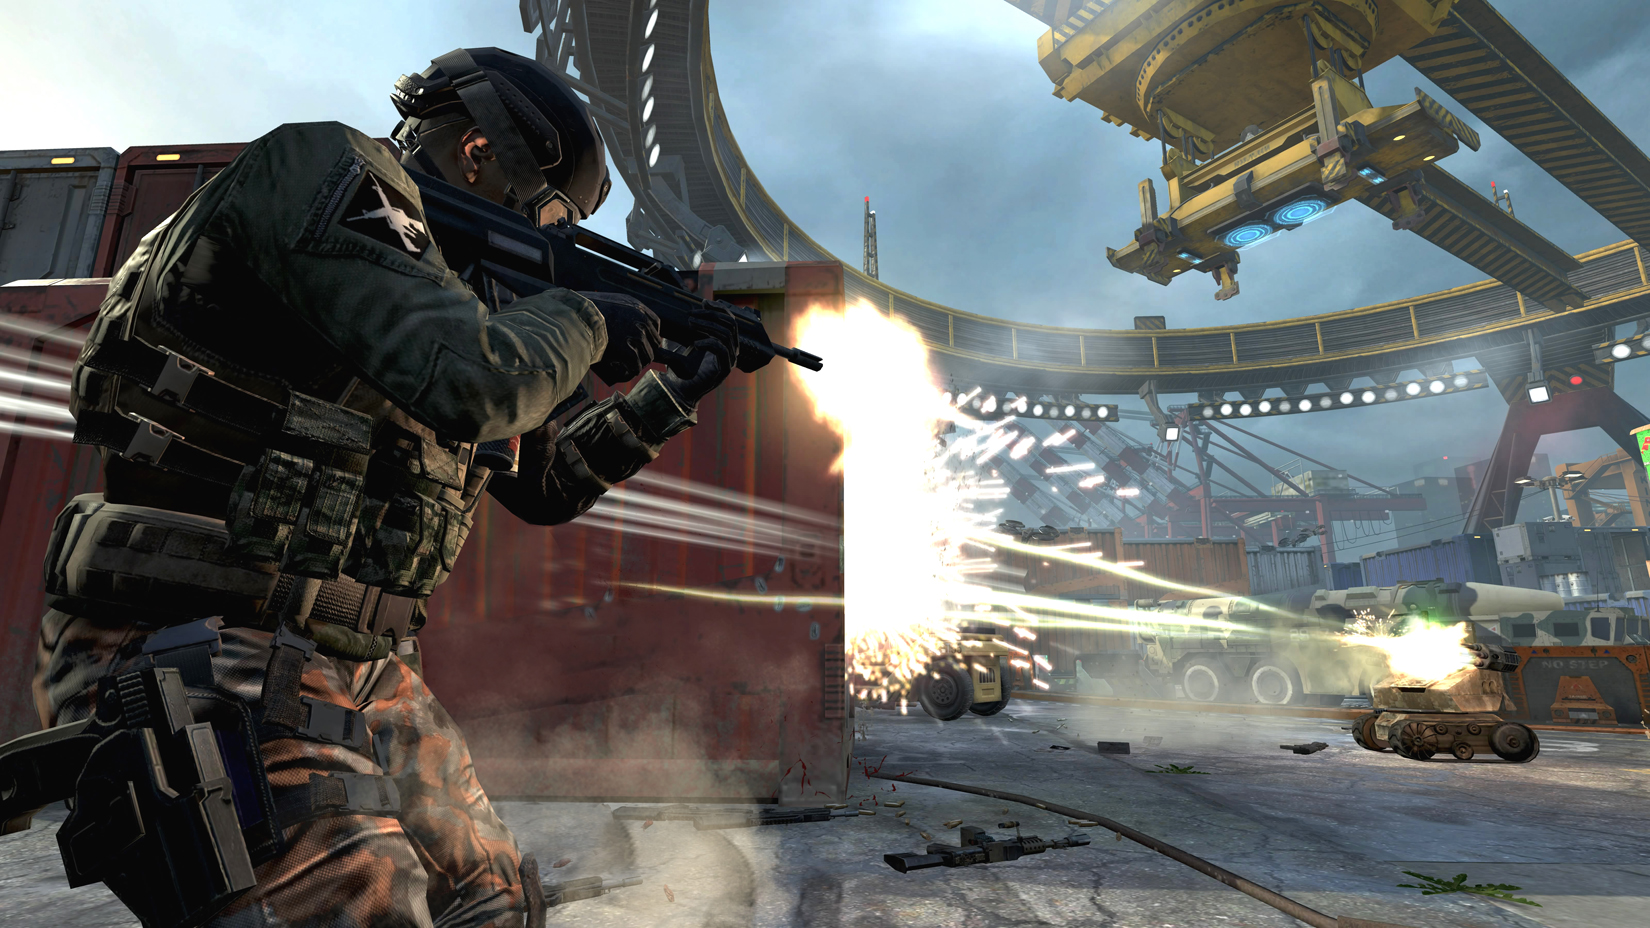 call-of-duty-black-ops-ii_between-a-drone-and-a-hard-place